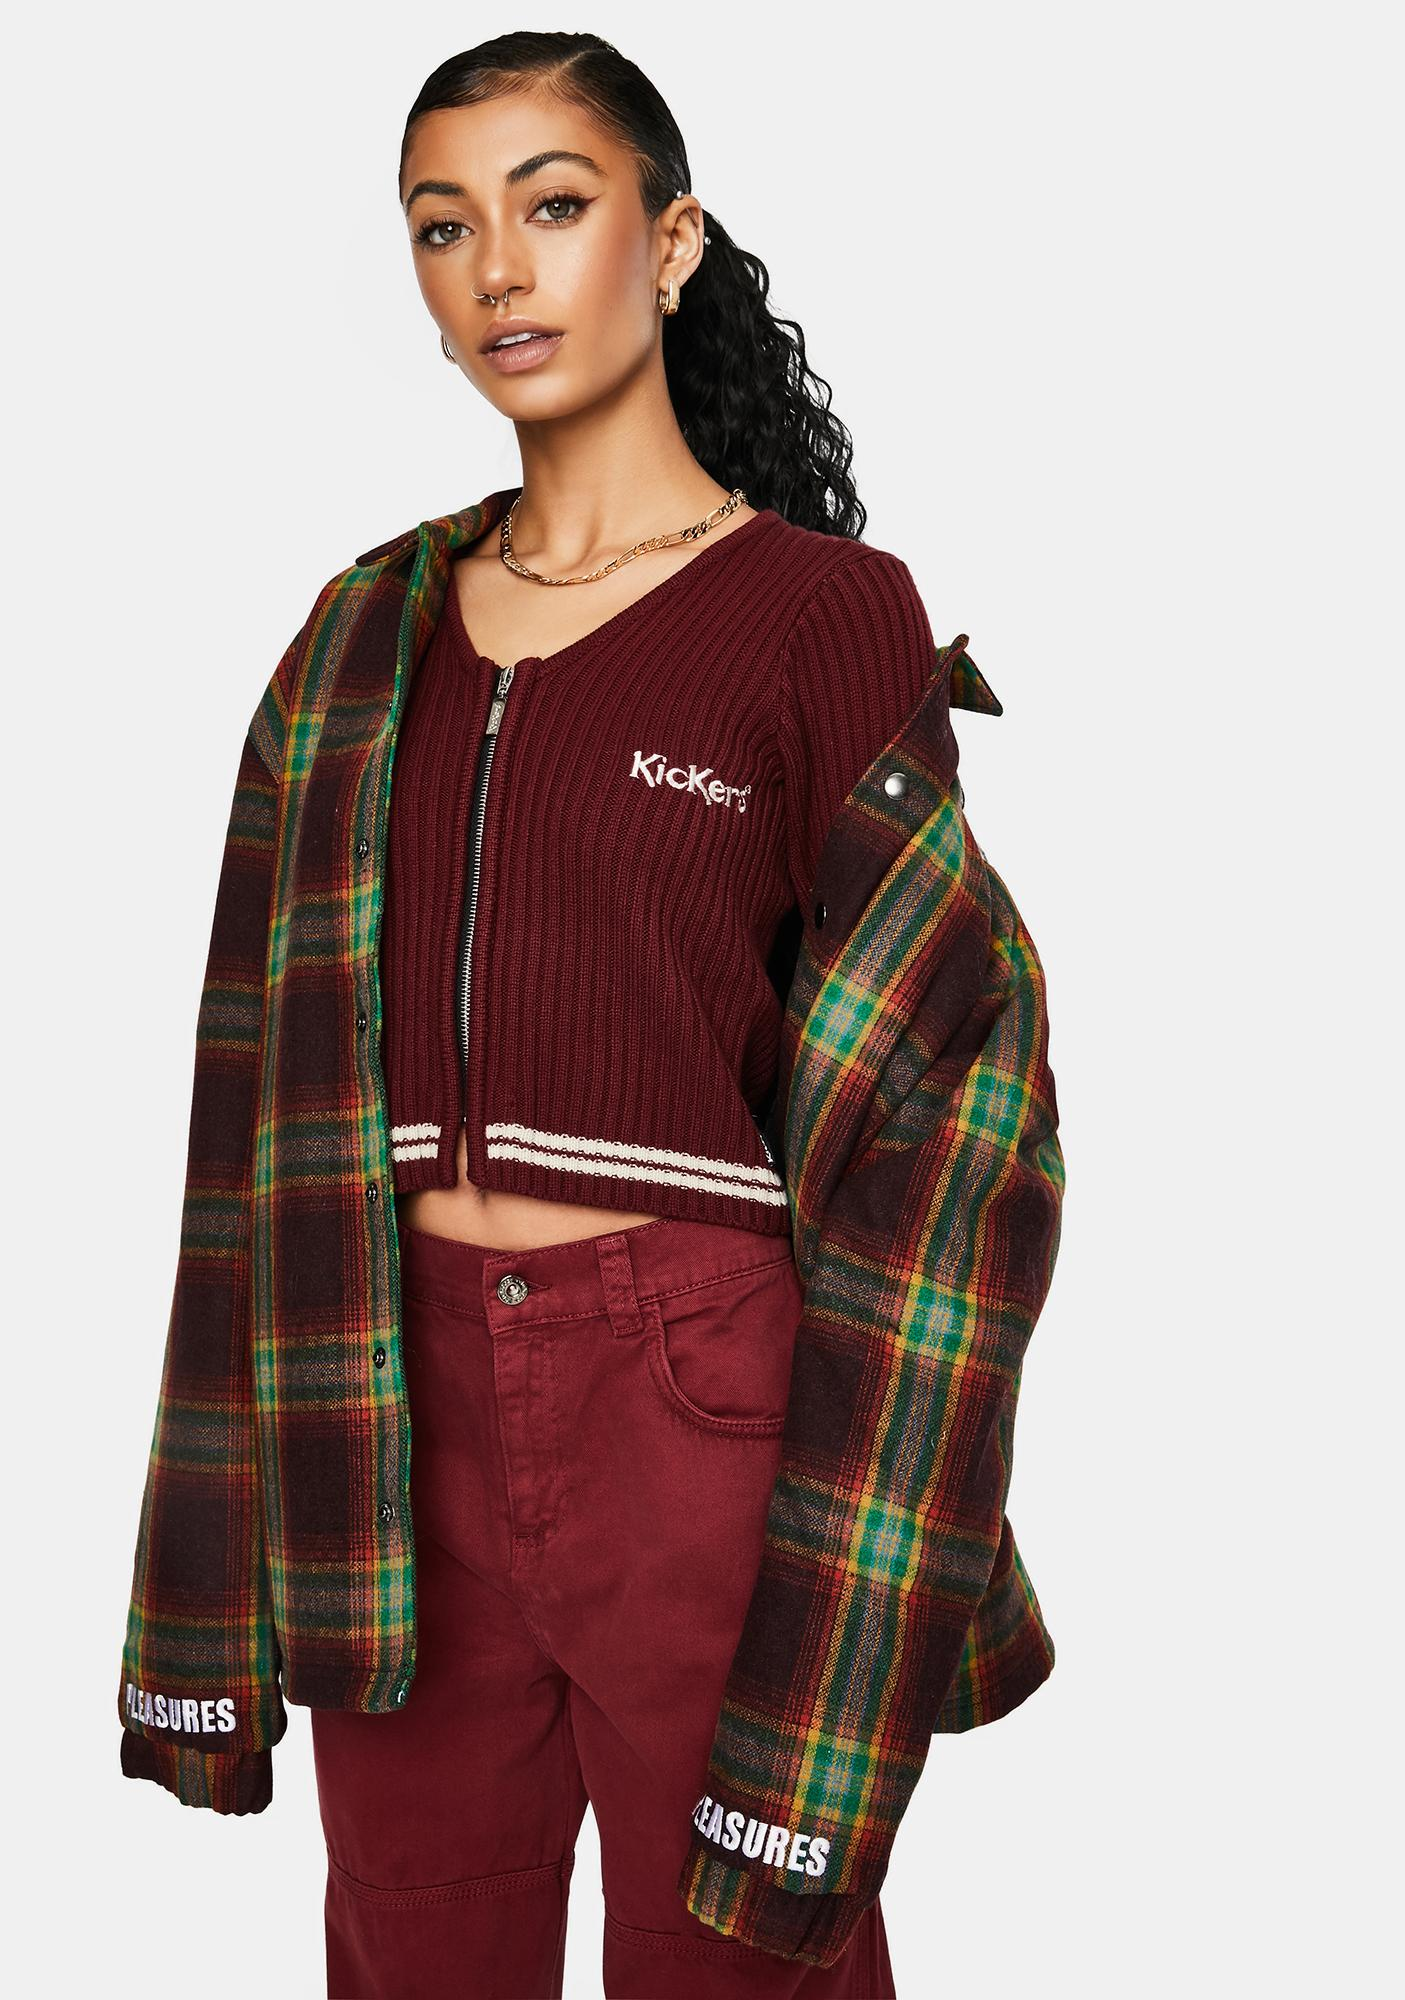 Kickers Burgundy Fitted Zip Up Knit Tee